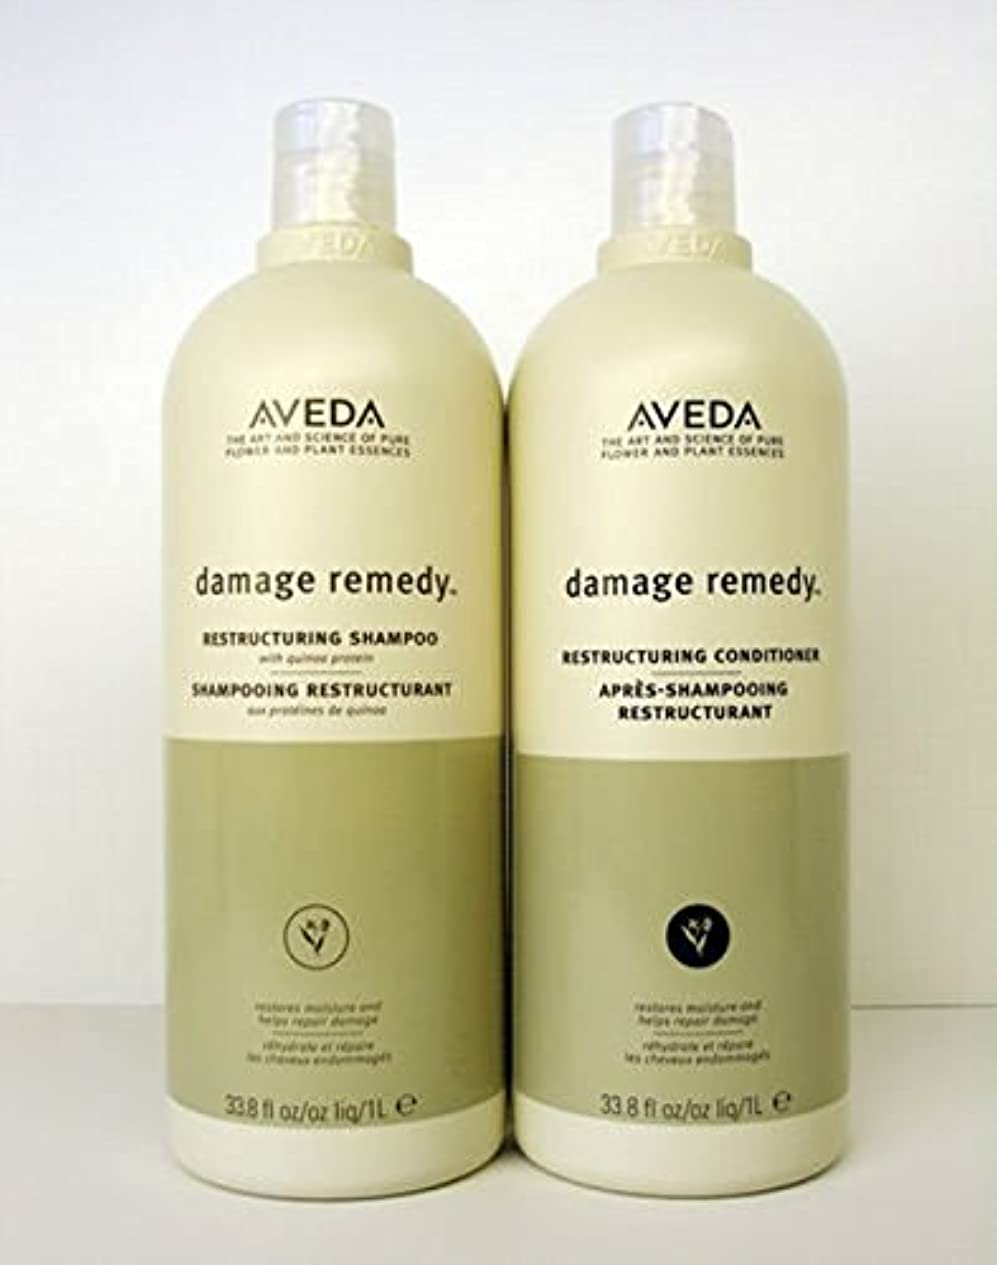 Aveda Damage Remedy Shampoo & Conditioner Liter Duo Set by Aveda [並行輸入品]